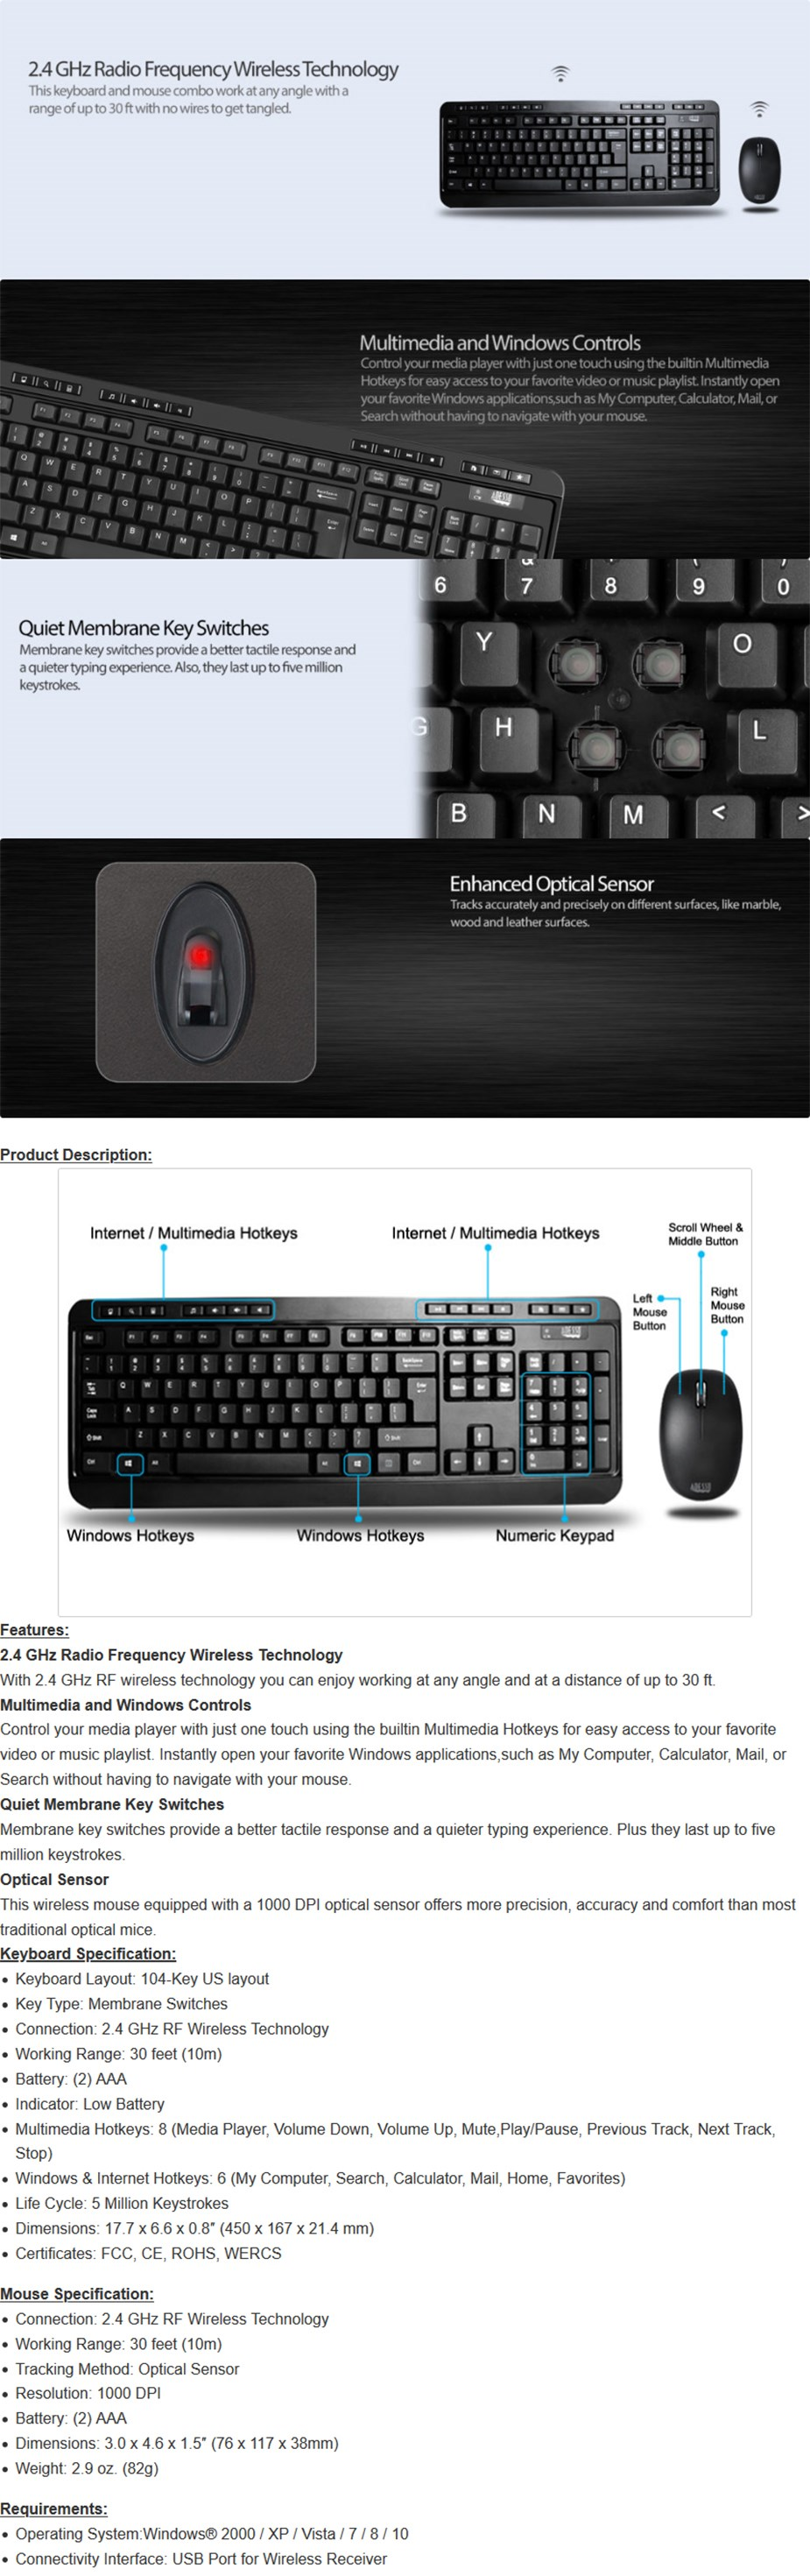 Adesso Wireless 104-Key Ergonomic Keyboard & Optical Mouse Combo - Overview Image 1